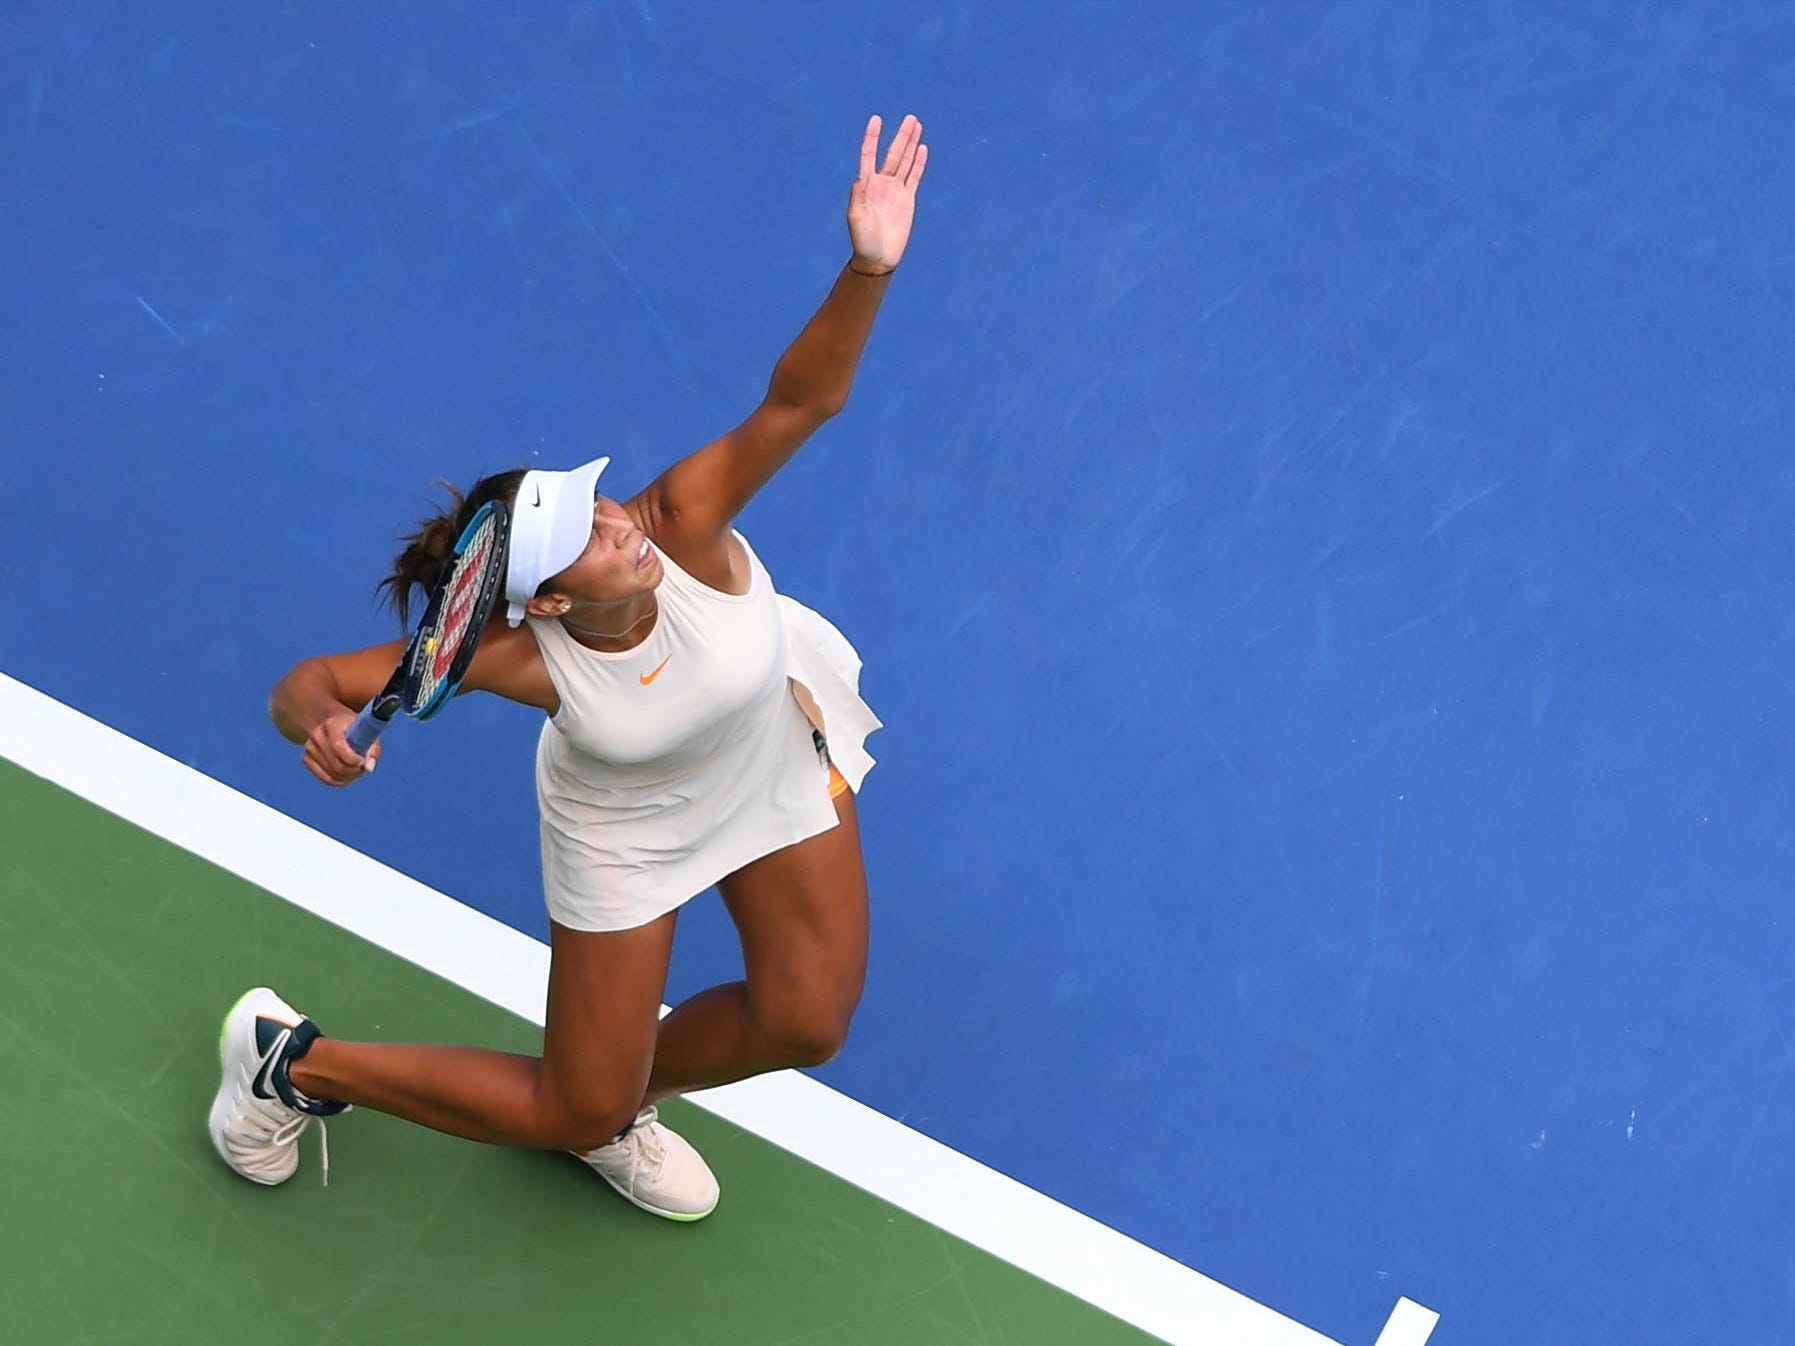 Madison Keys of the USA winds up to serve during her 4-6, 6-1, 6-2 victory against Aleksandra Krunic of Serbia.